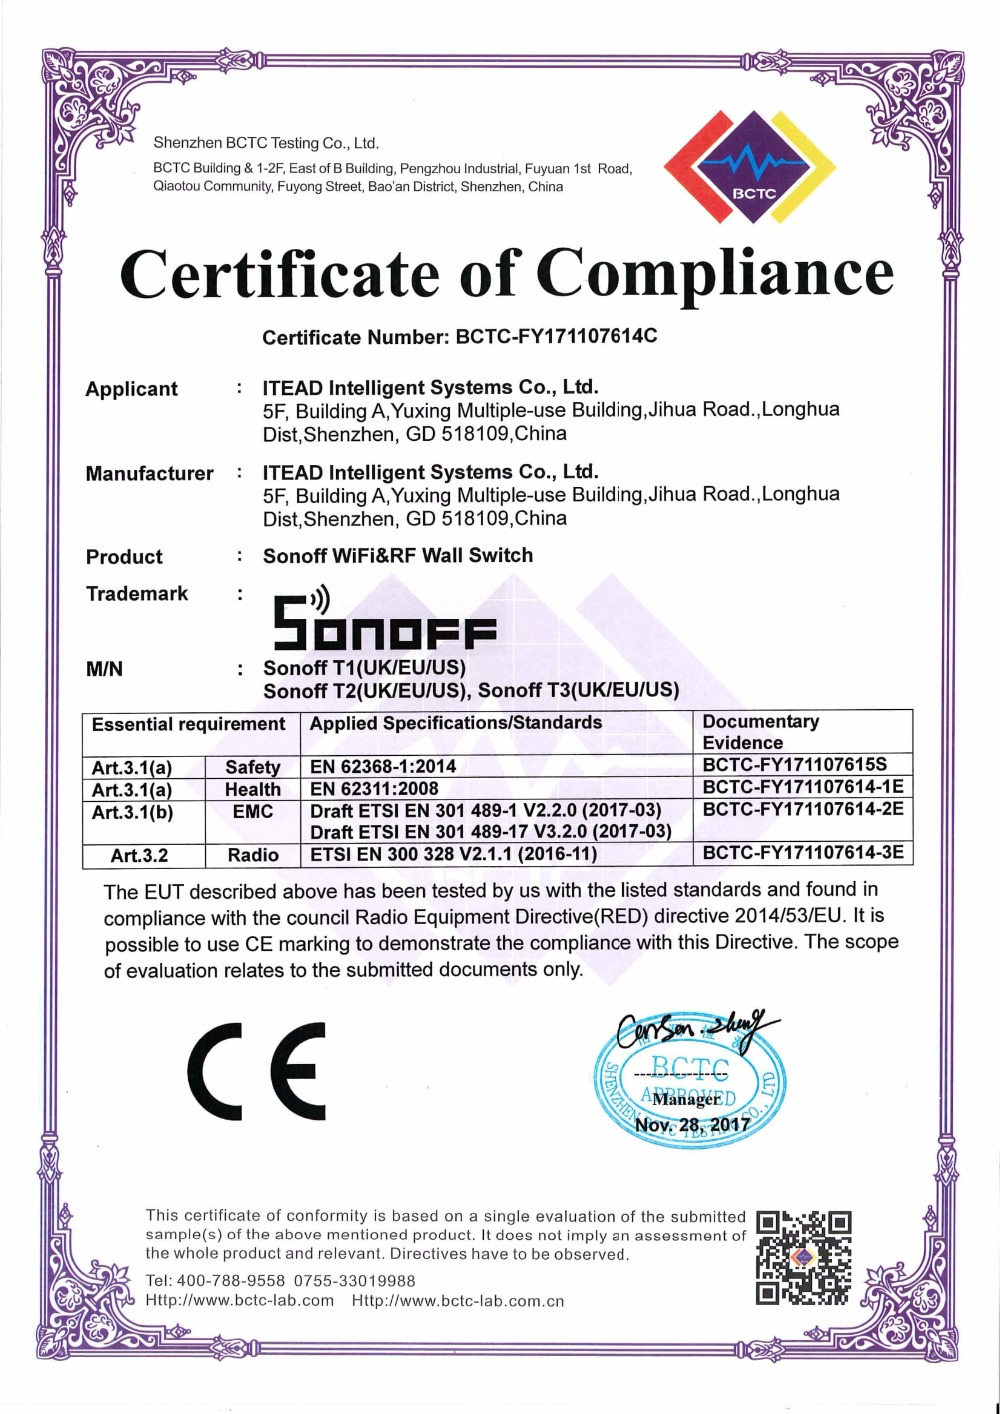 Sonoff_T1_RED_Certificate